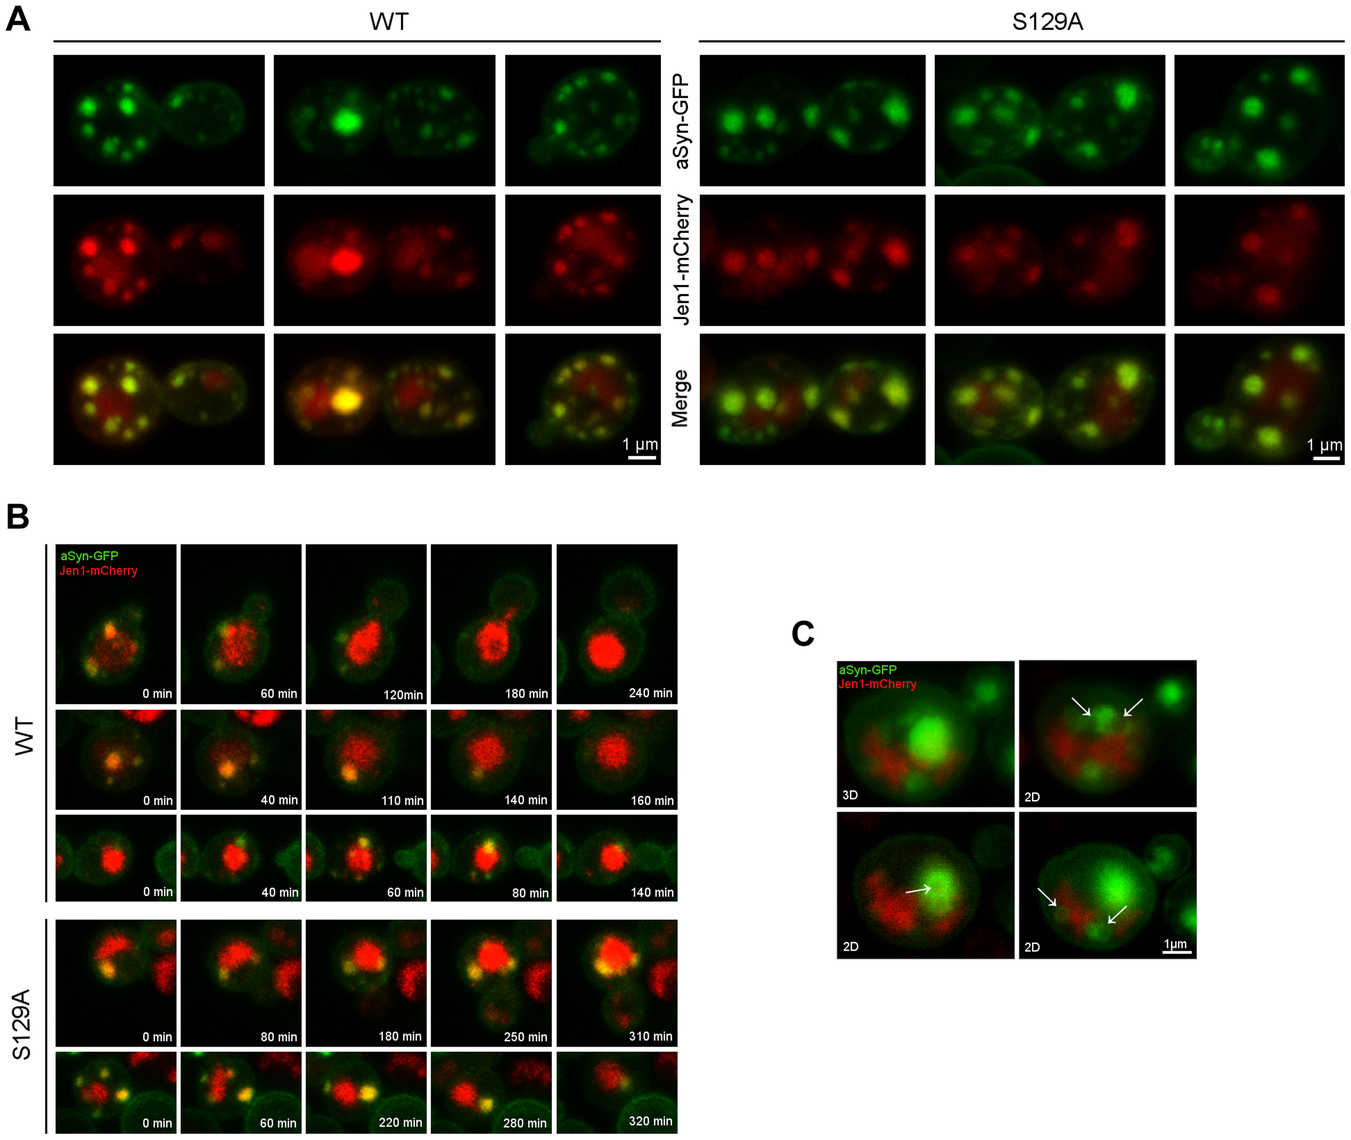 Plasma membrane to vacuole endocytic trafficking of WT and S129A aSyn.